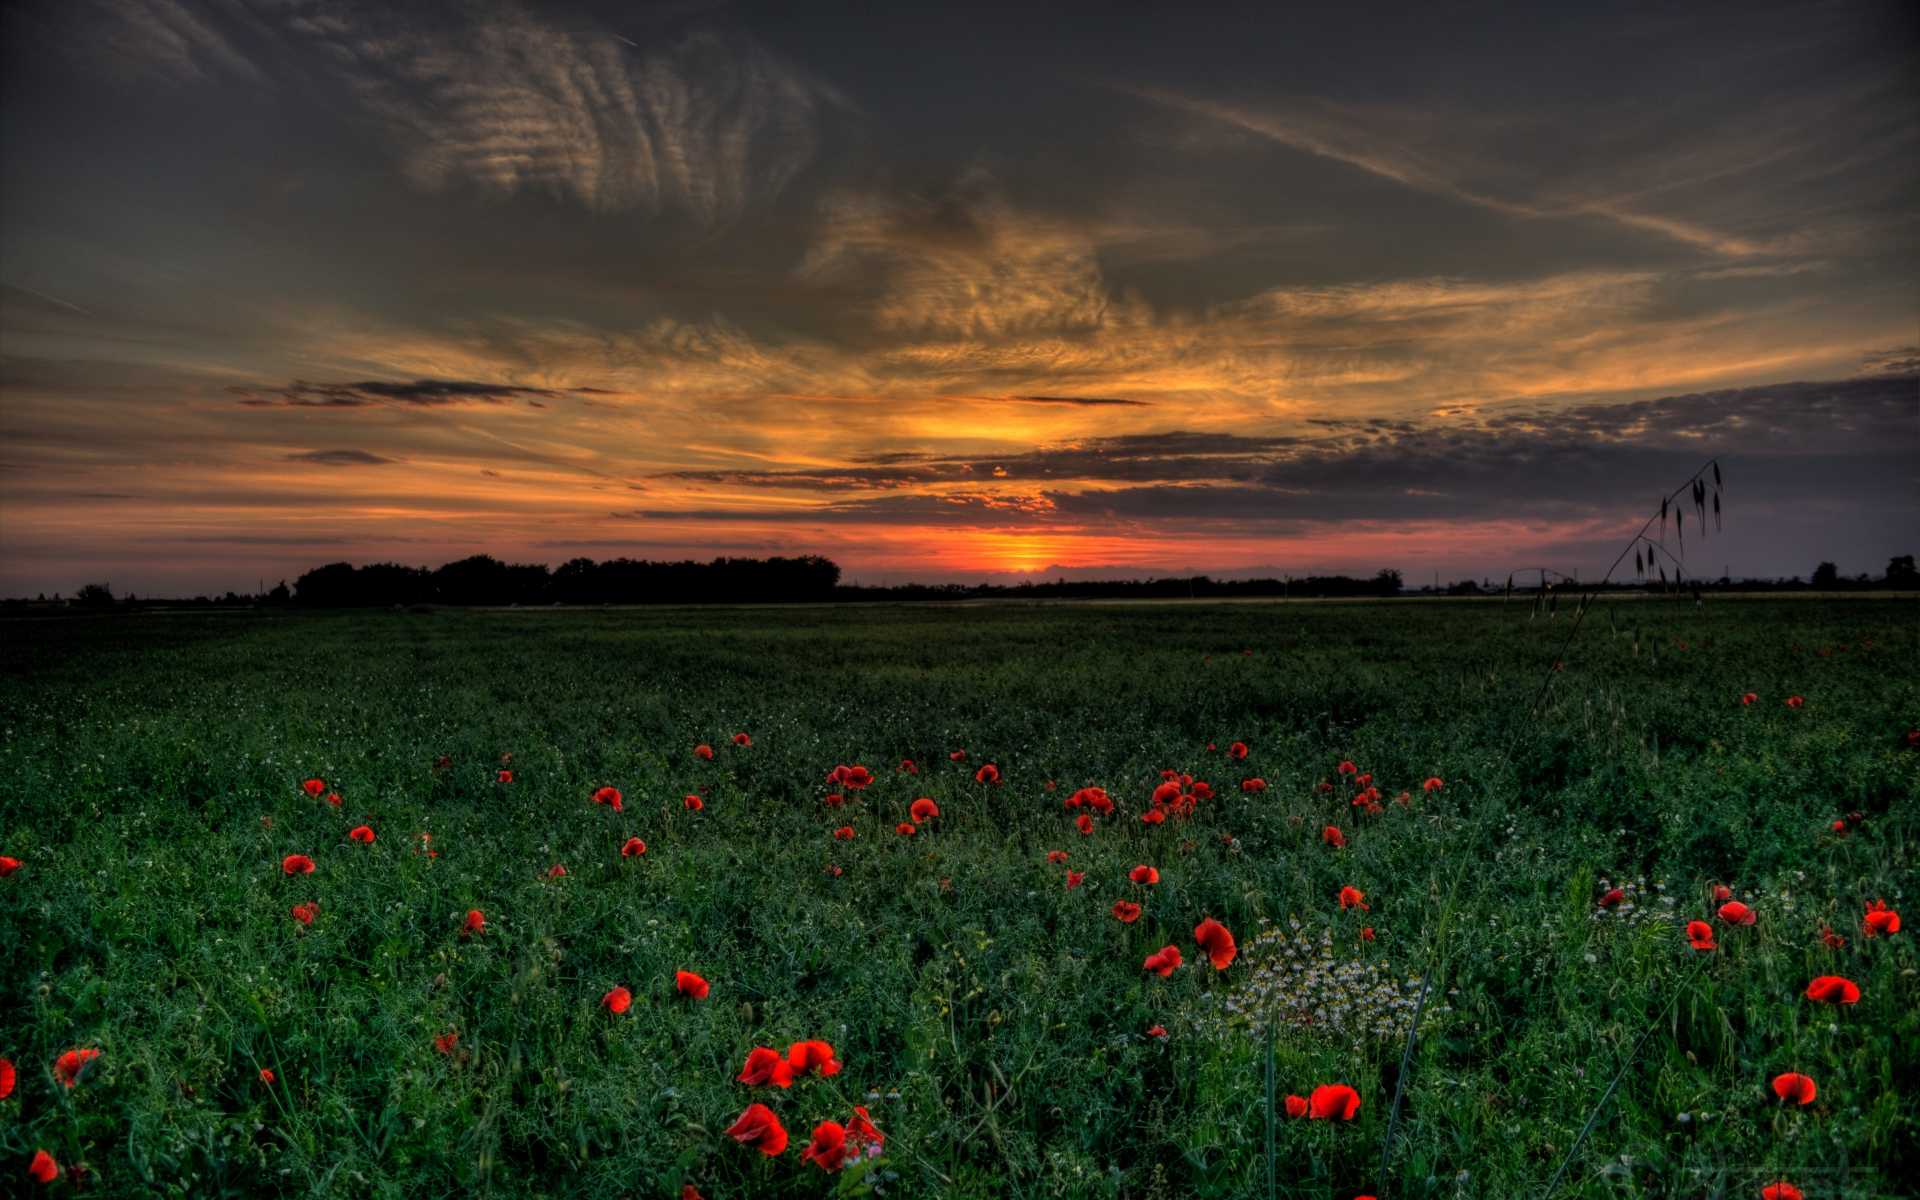 Poppies Plants Field Sunset Wallpapers Poppies Plants